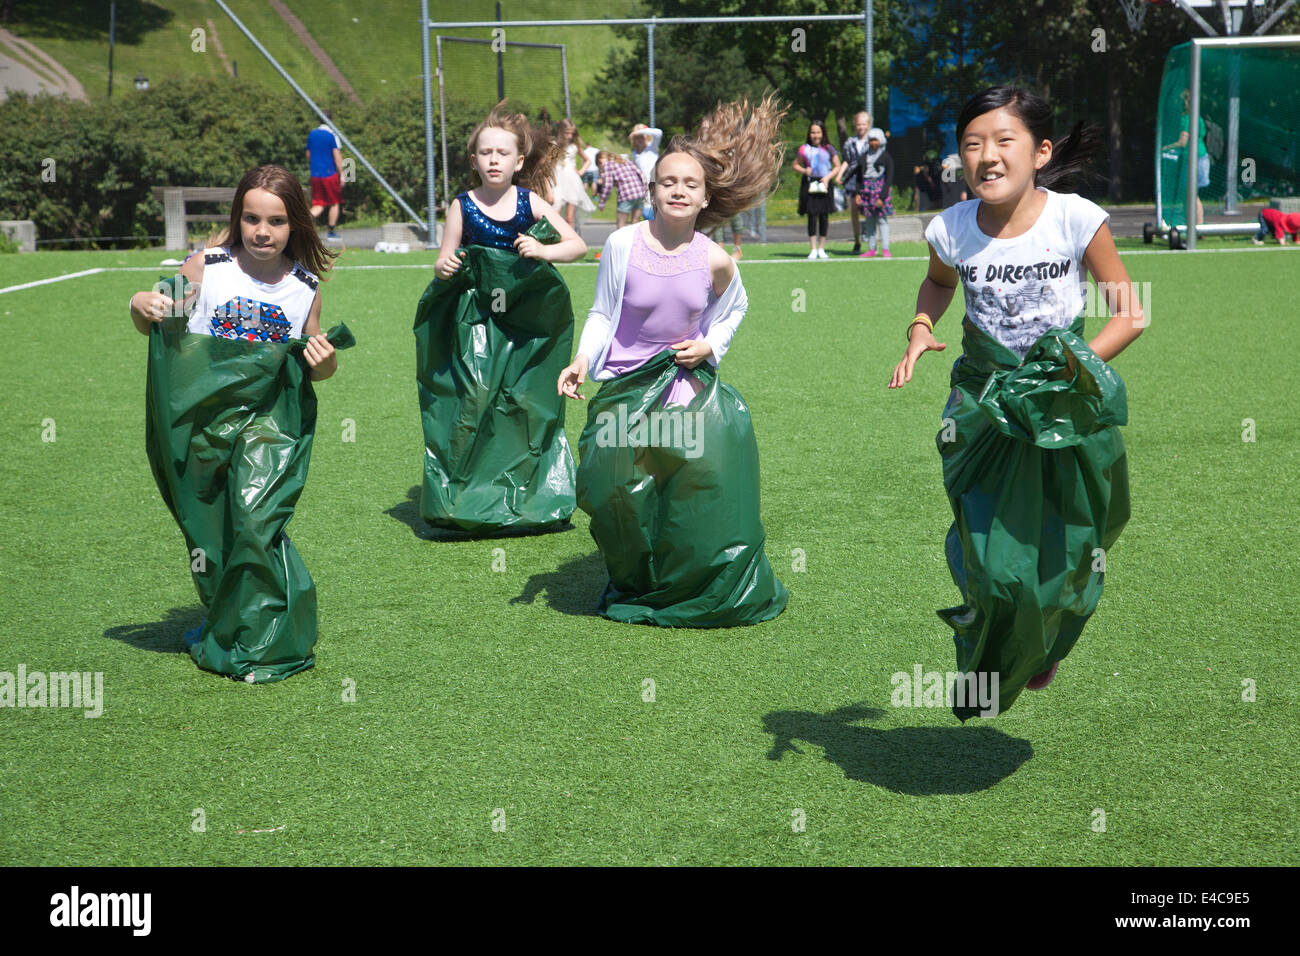 Kids potato sack racing Stock Photo